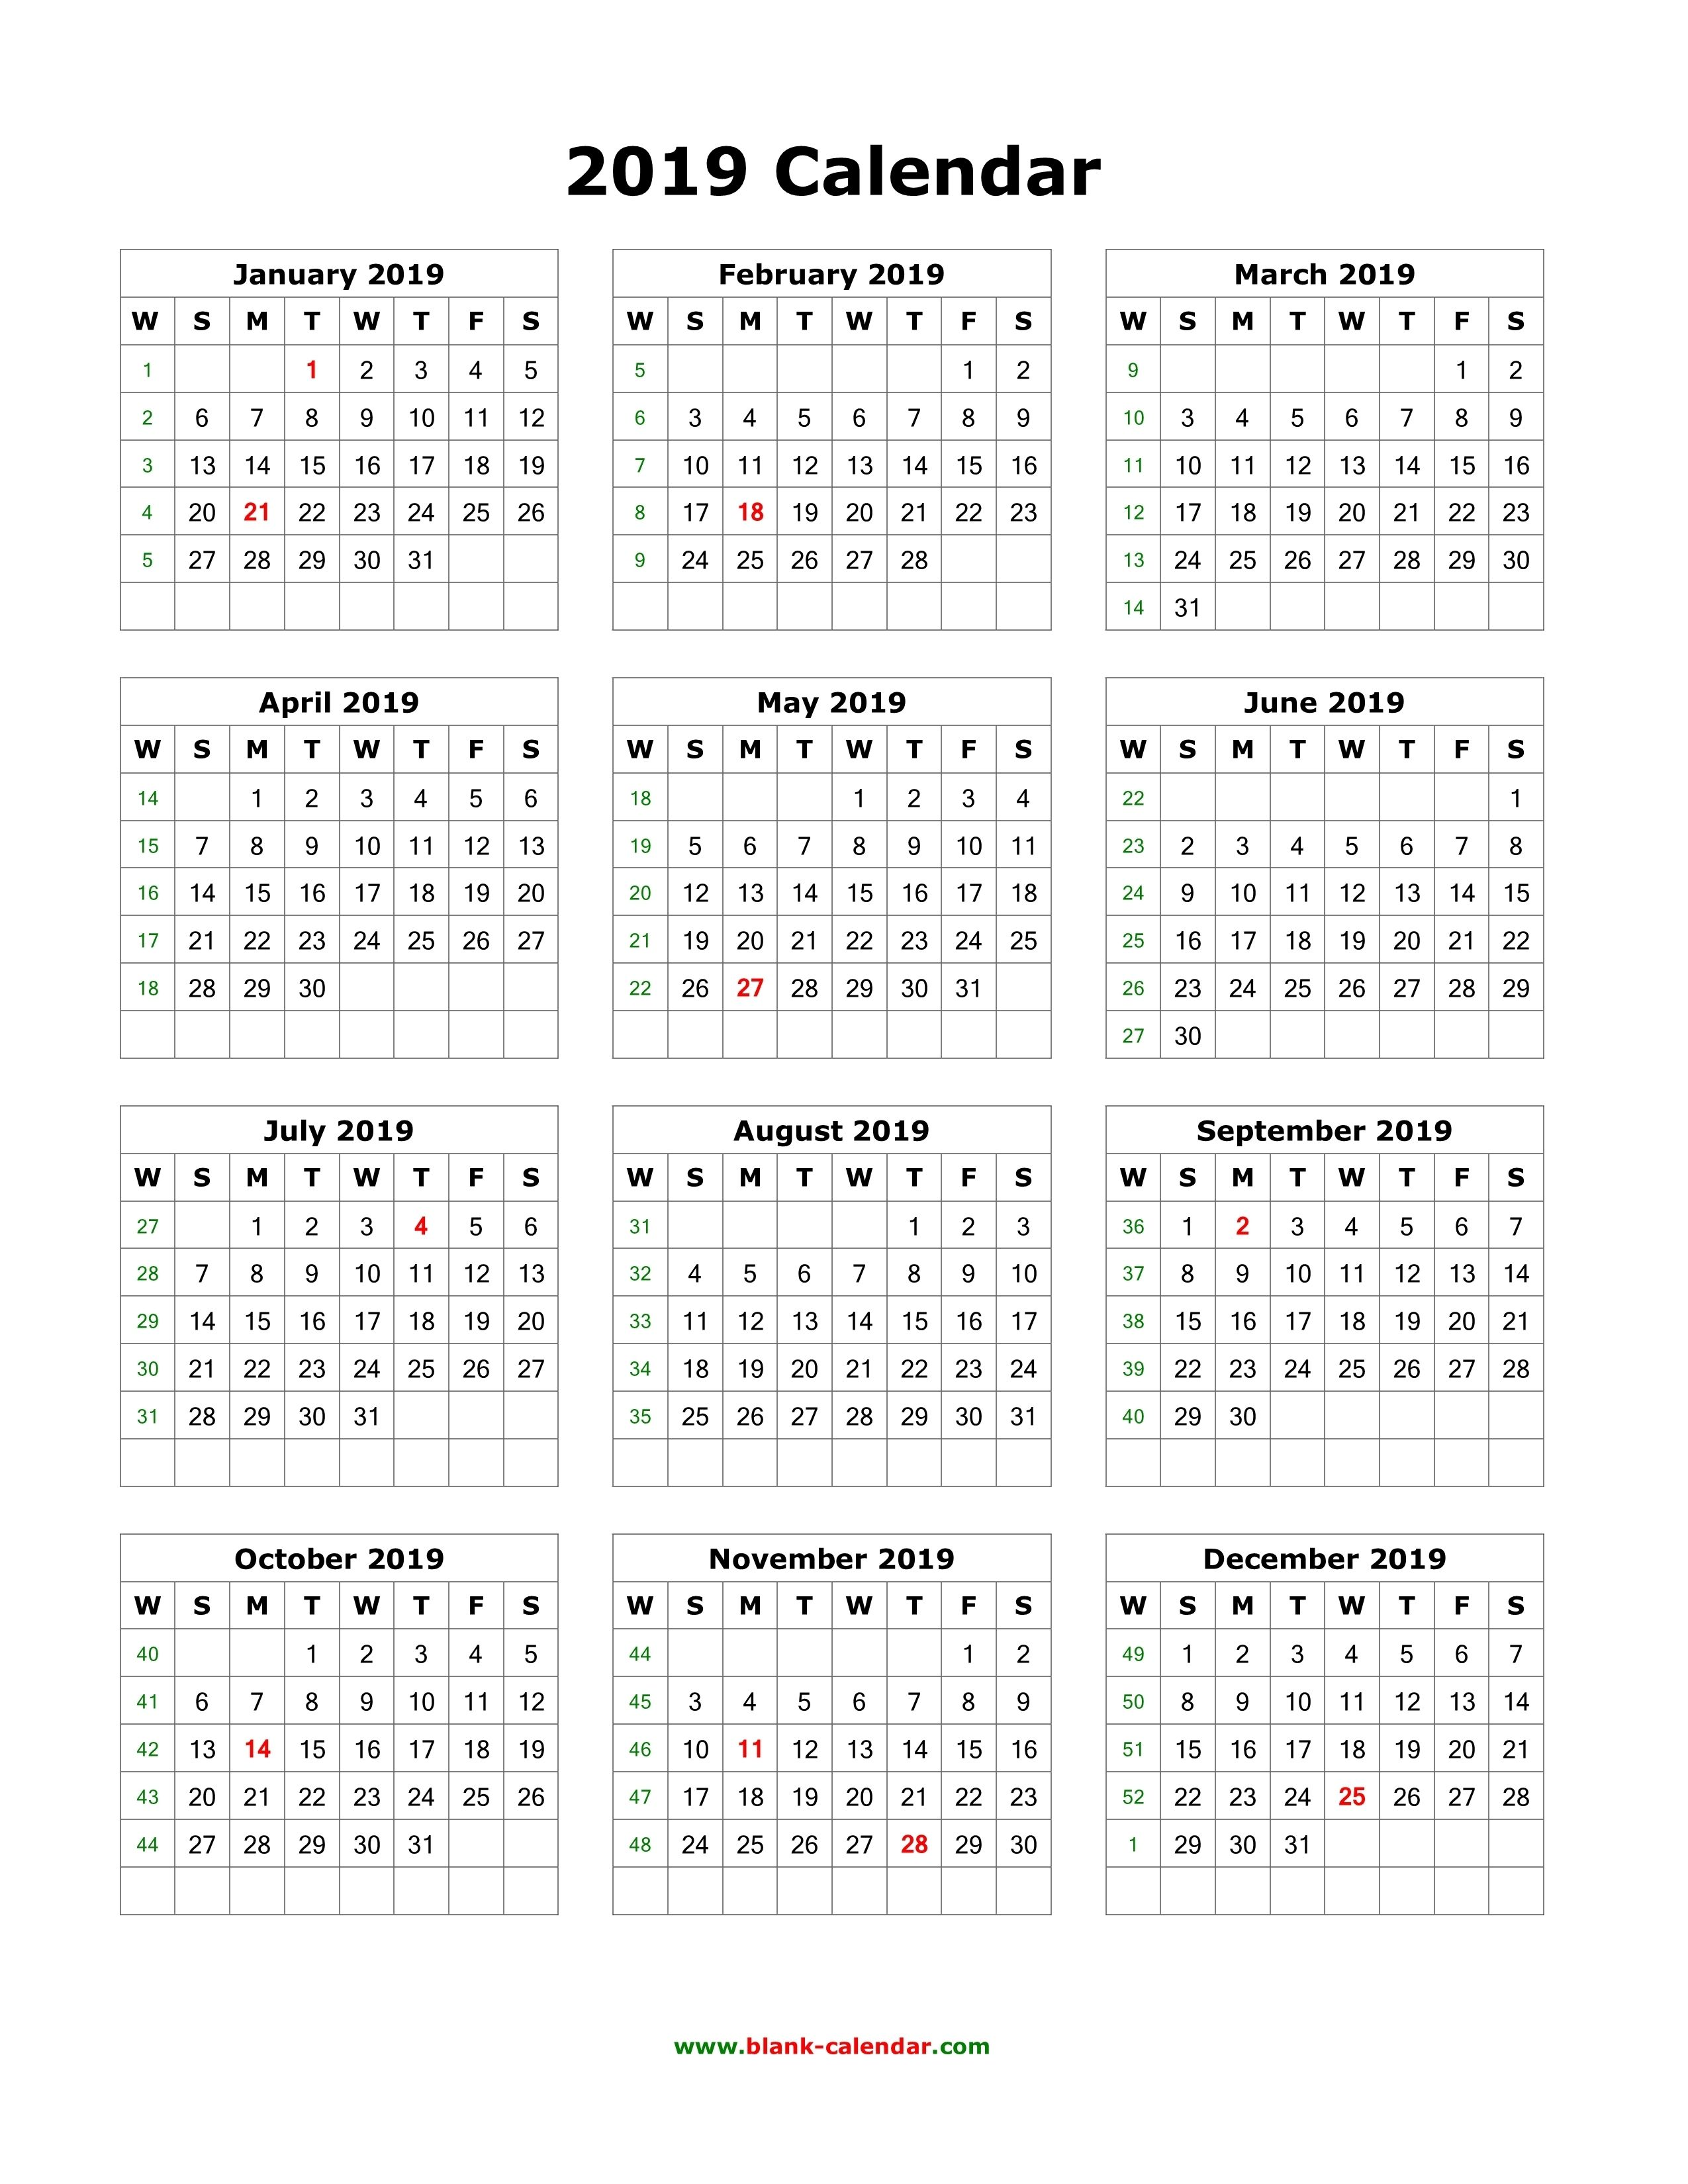 Download Blank Calendar 2019 12 Months On One Page Vertical Get Printable Yearly Calendar Yearly Calendar Template 12 Month Calendar Printable